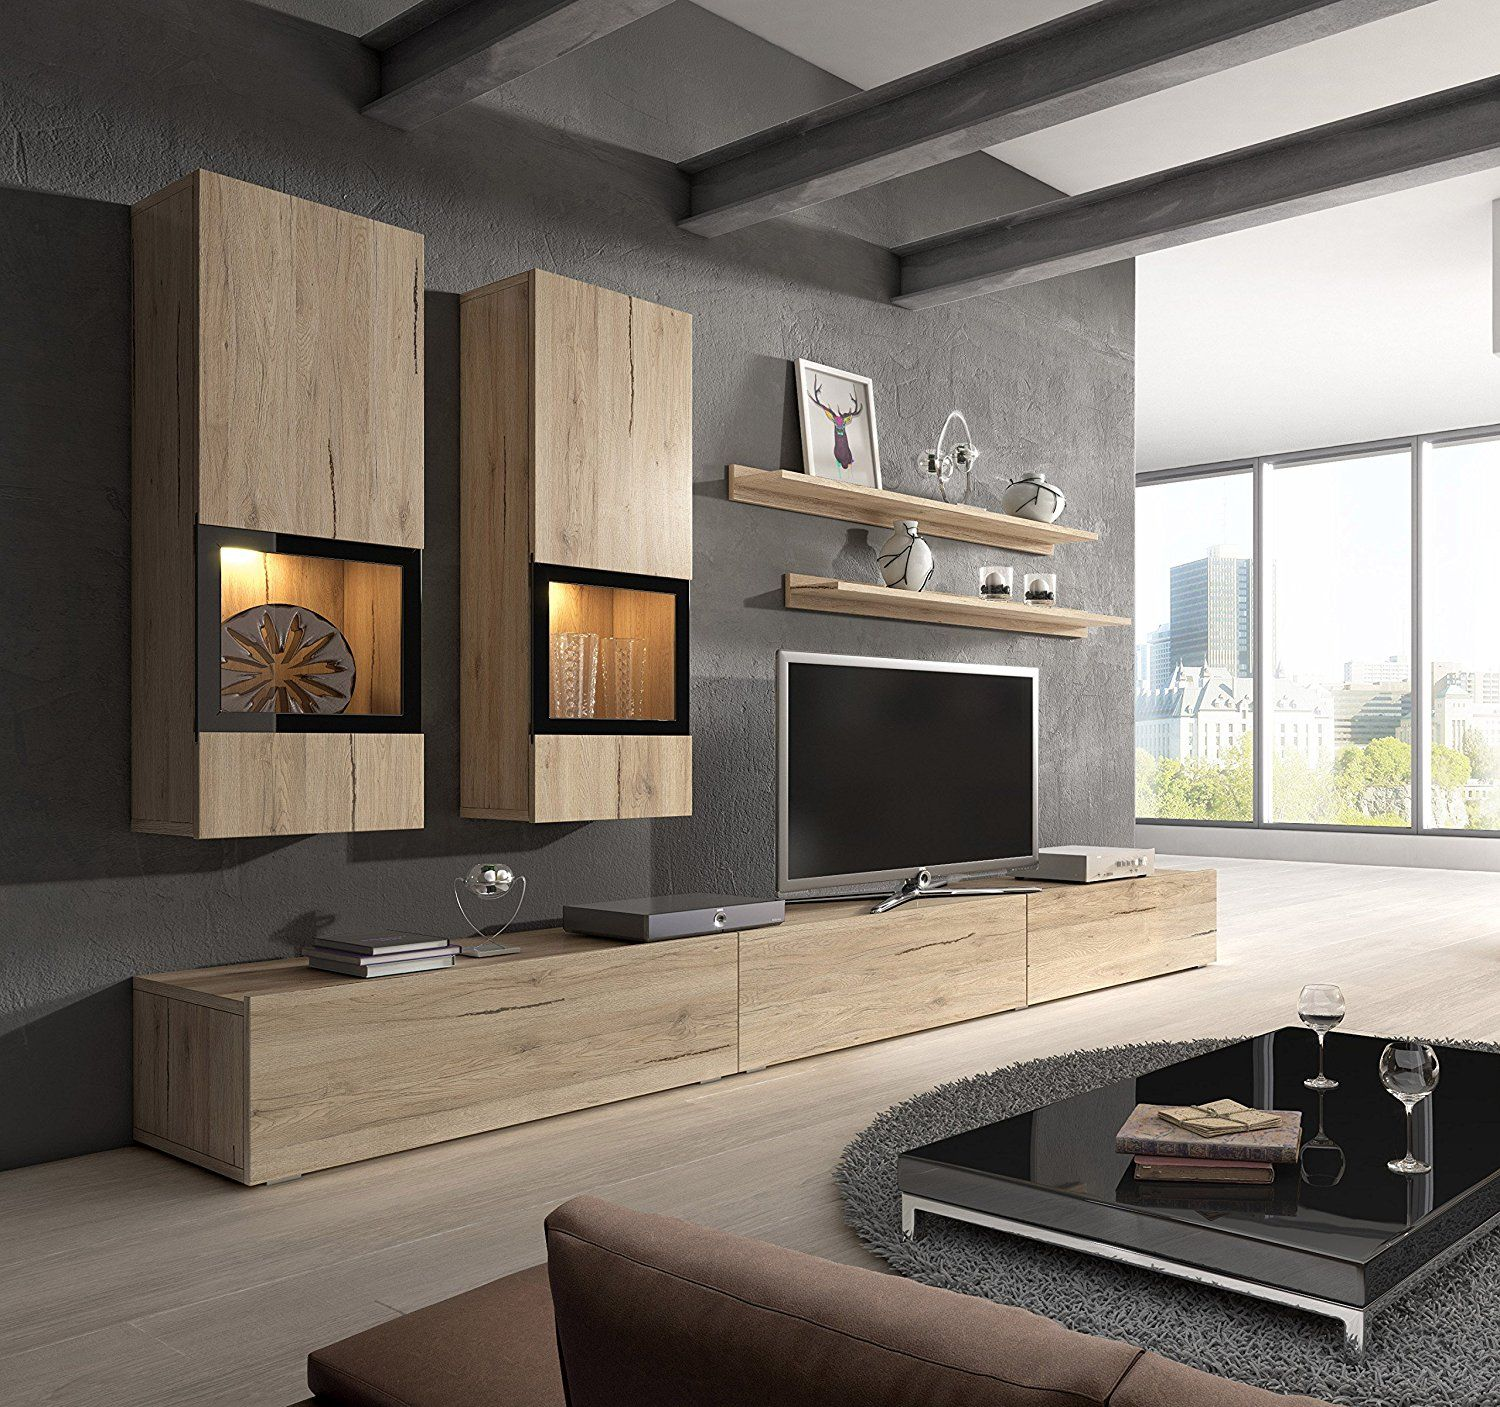 Modern living room design ideas with baros sonoma oak wall unit modern entertainment center contemporary design led lights high capacity storage baros